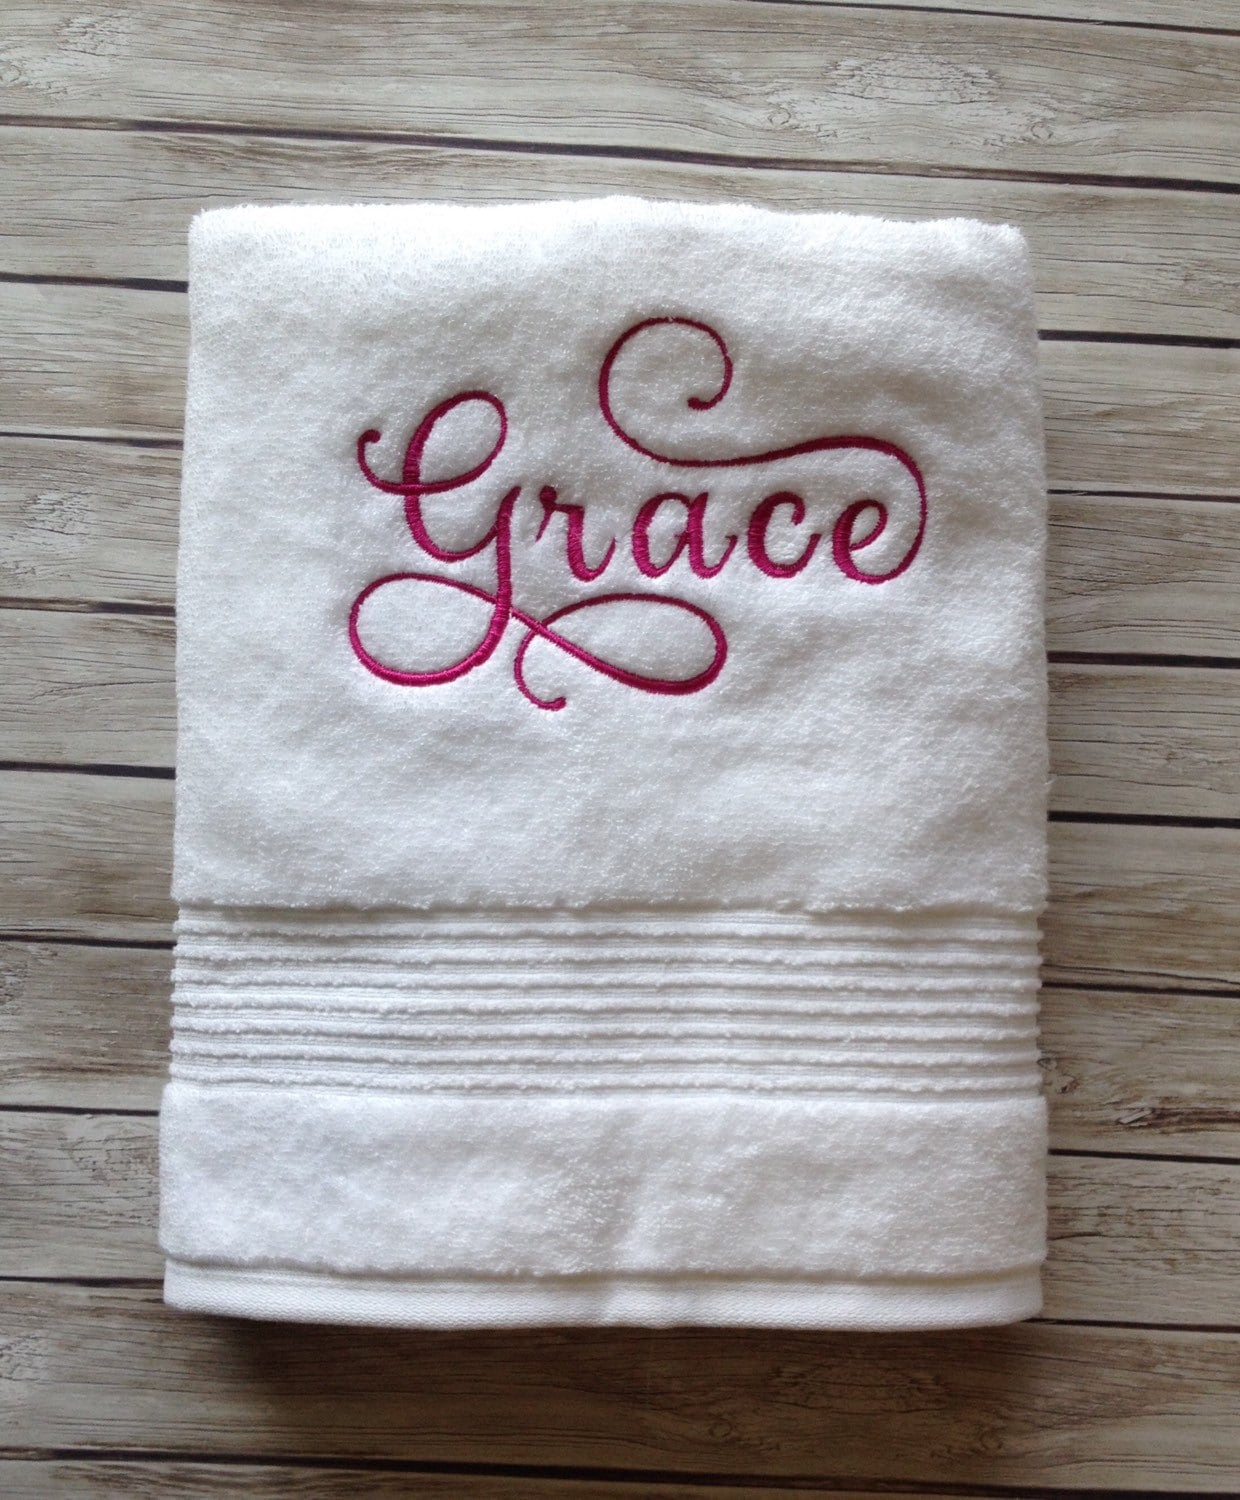 Custom Towels Embroidered Towels Christmas Gift